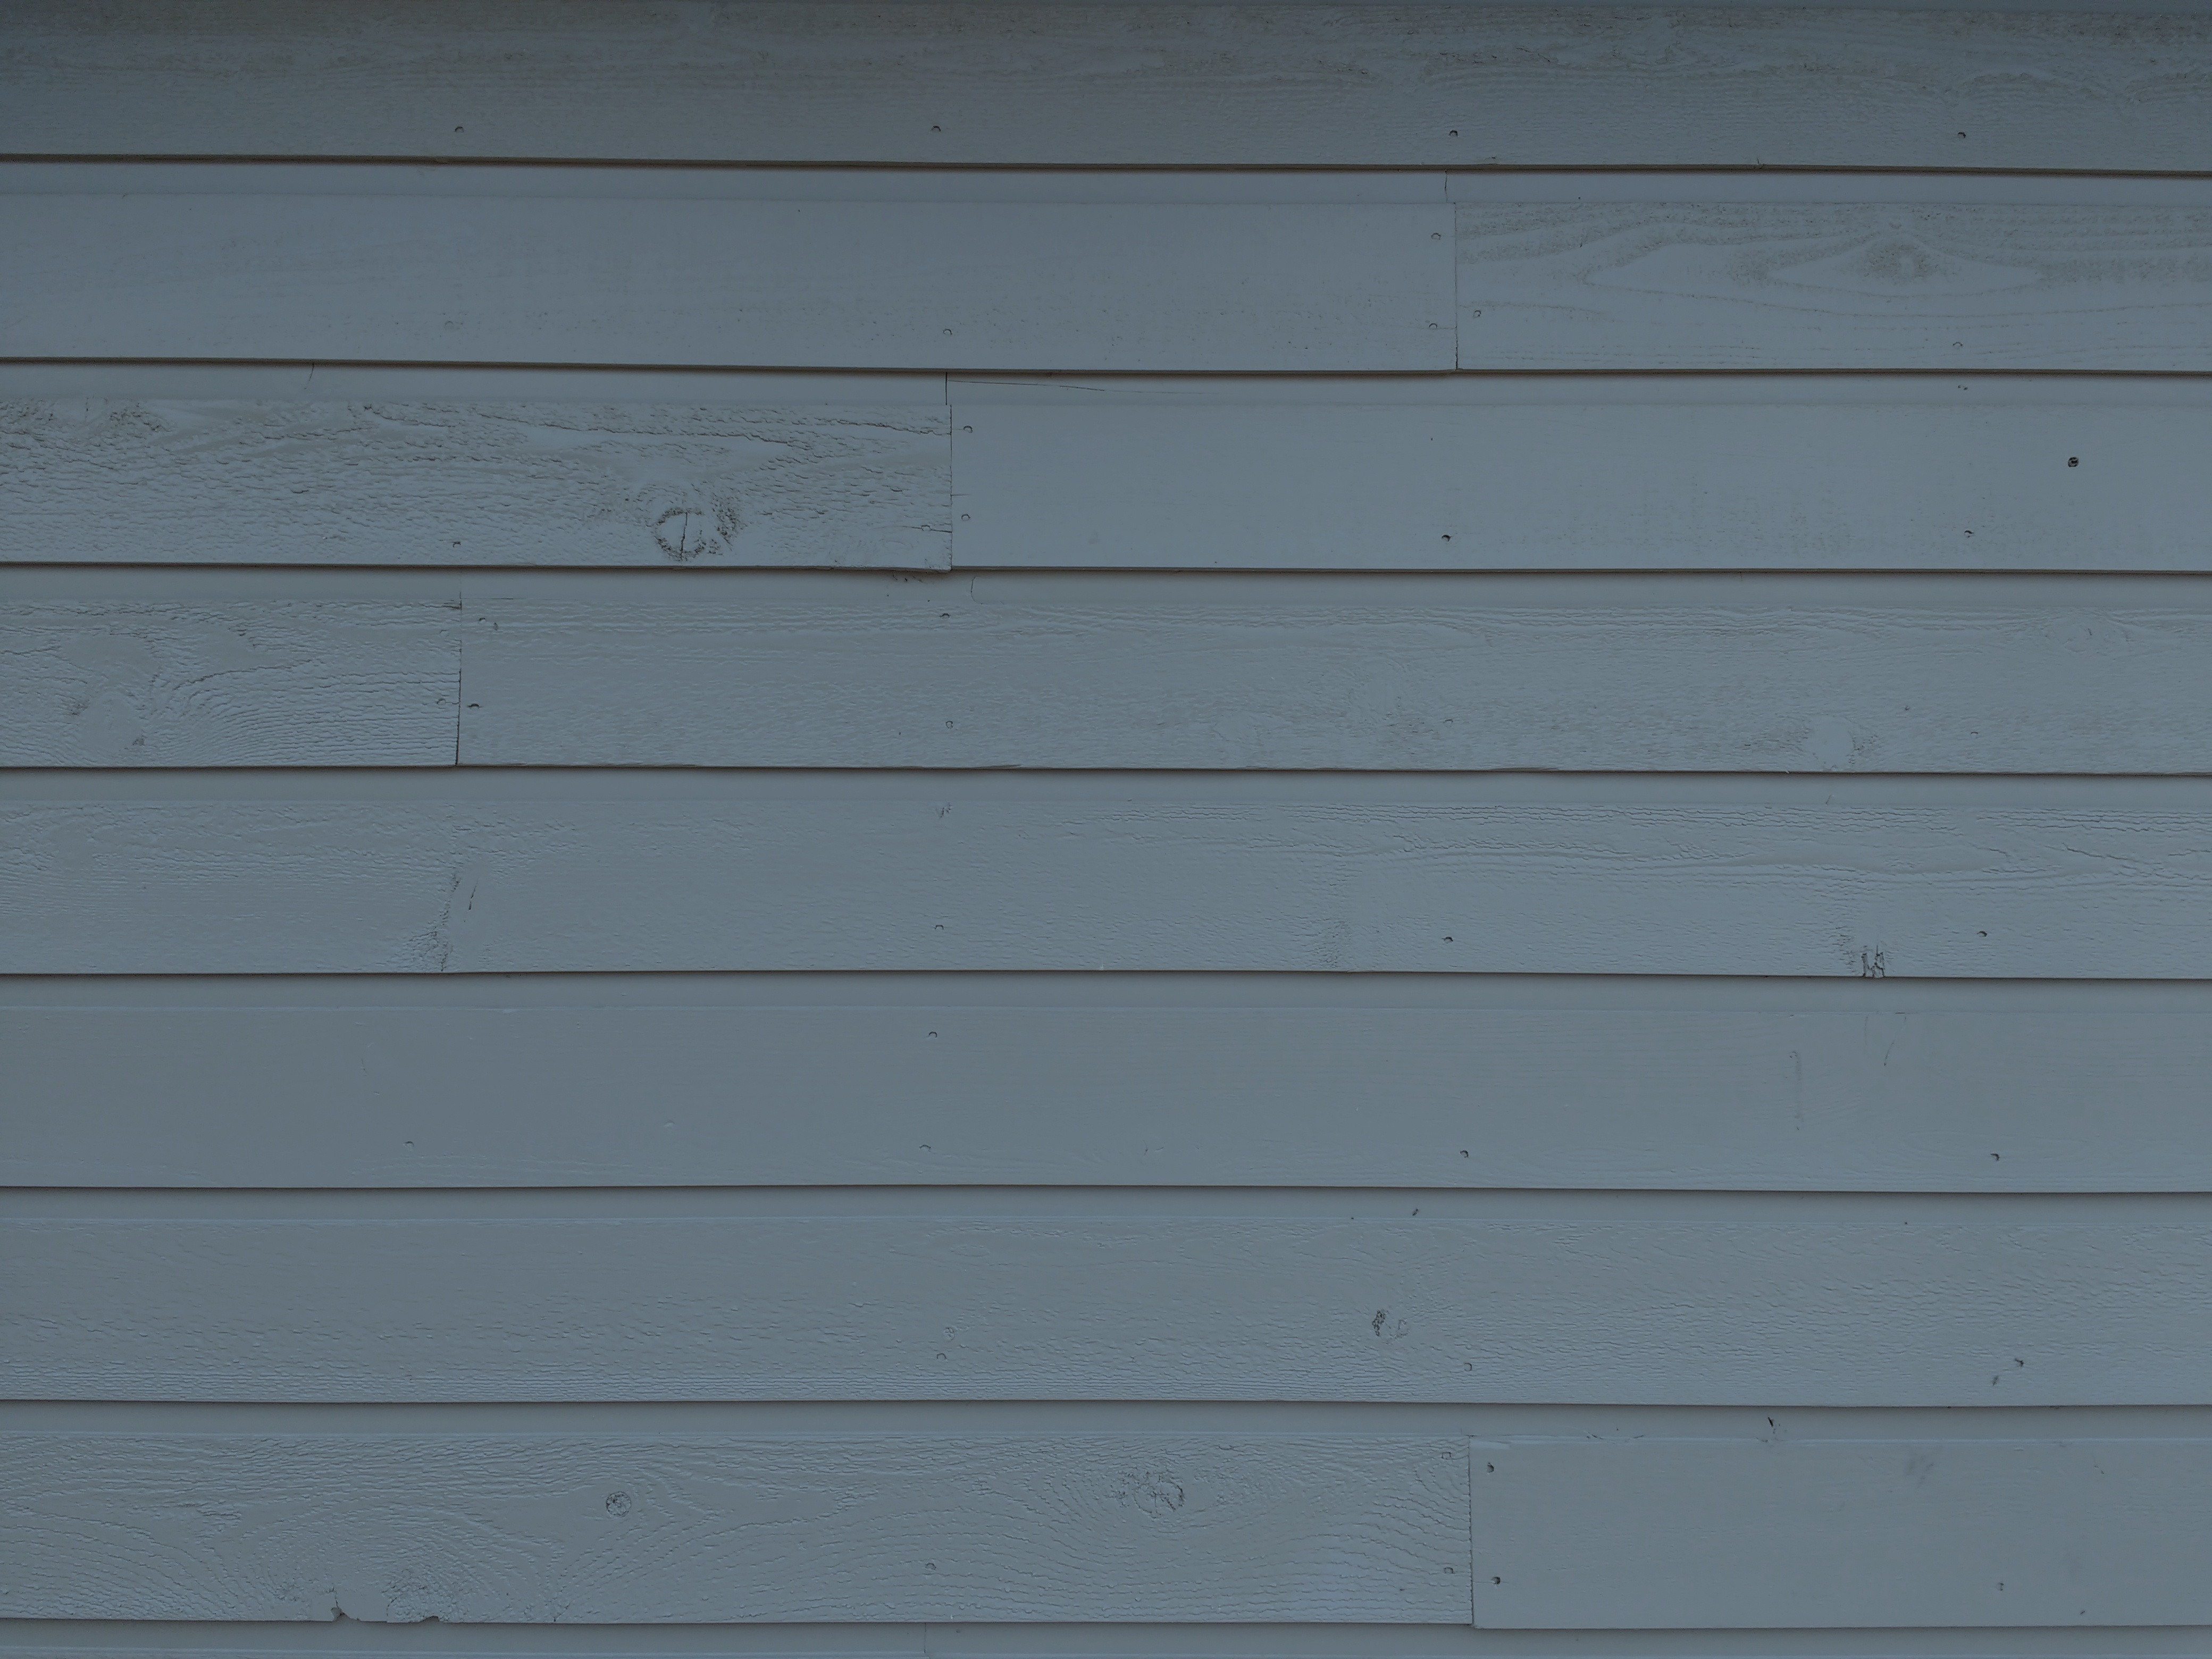 Blue Drop Channel Wood Siding Texture Picture Free